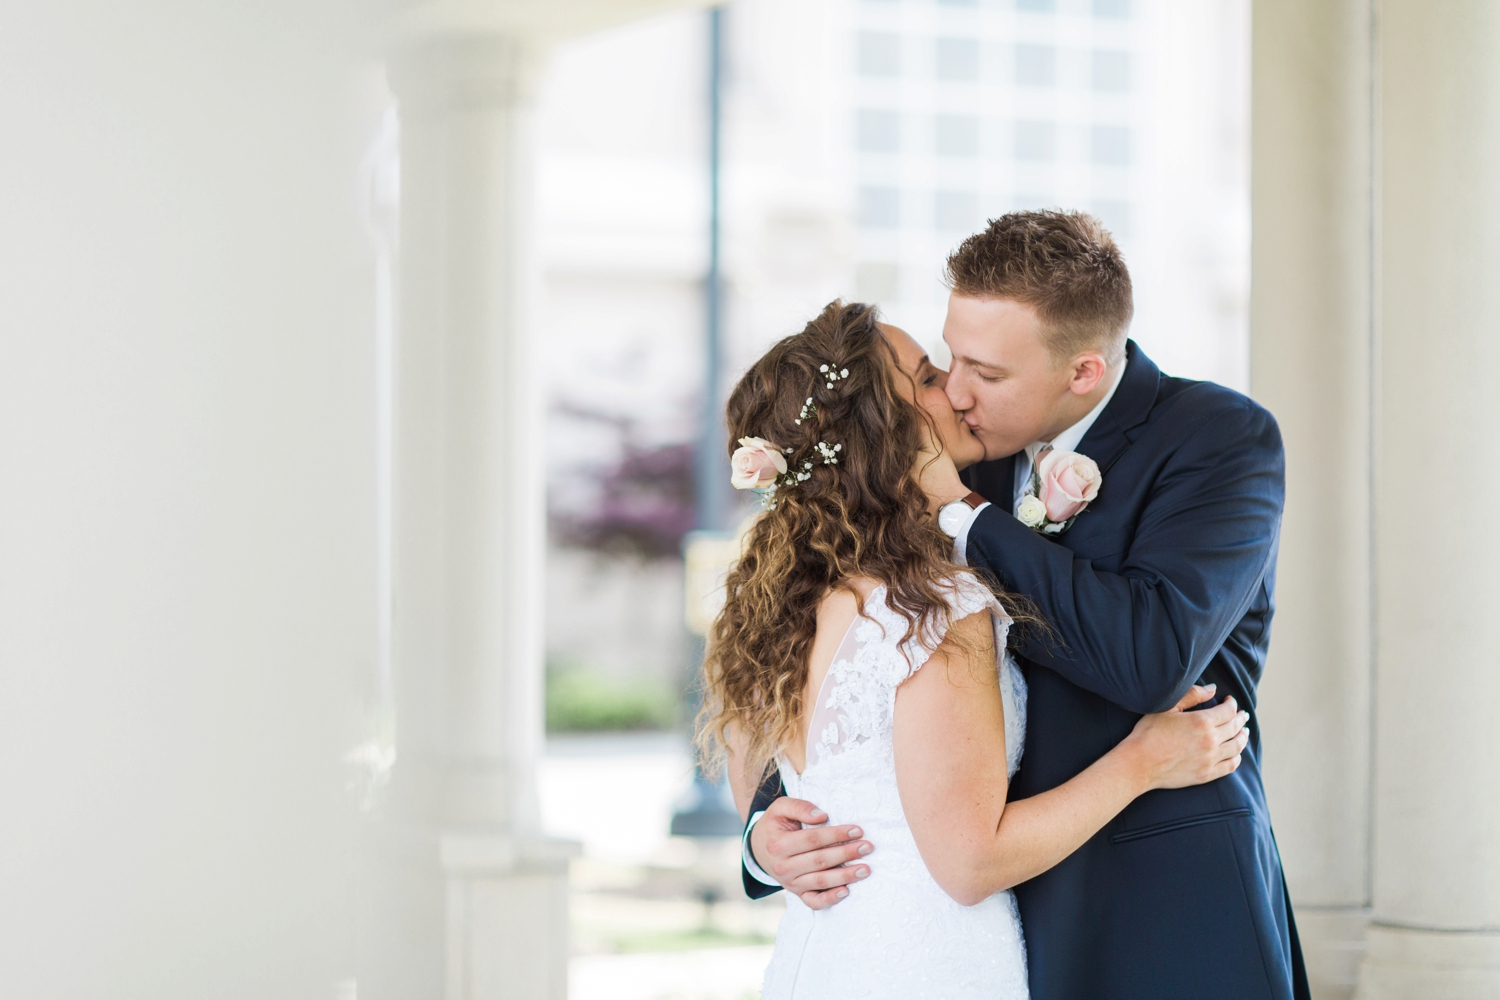 Community_Life_Center_Indianapolis_Indiana_Wedding_Photographer_Chloe_Luka_Photography_6870.jpg